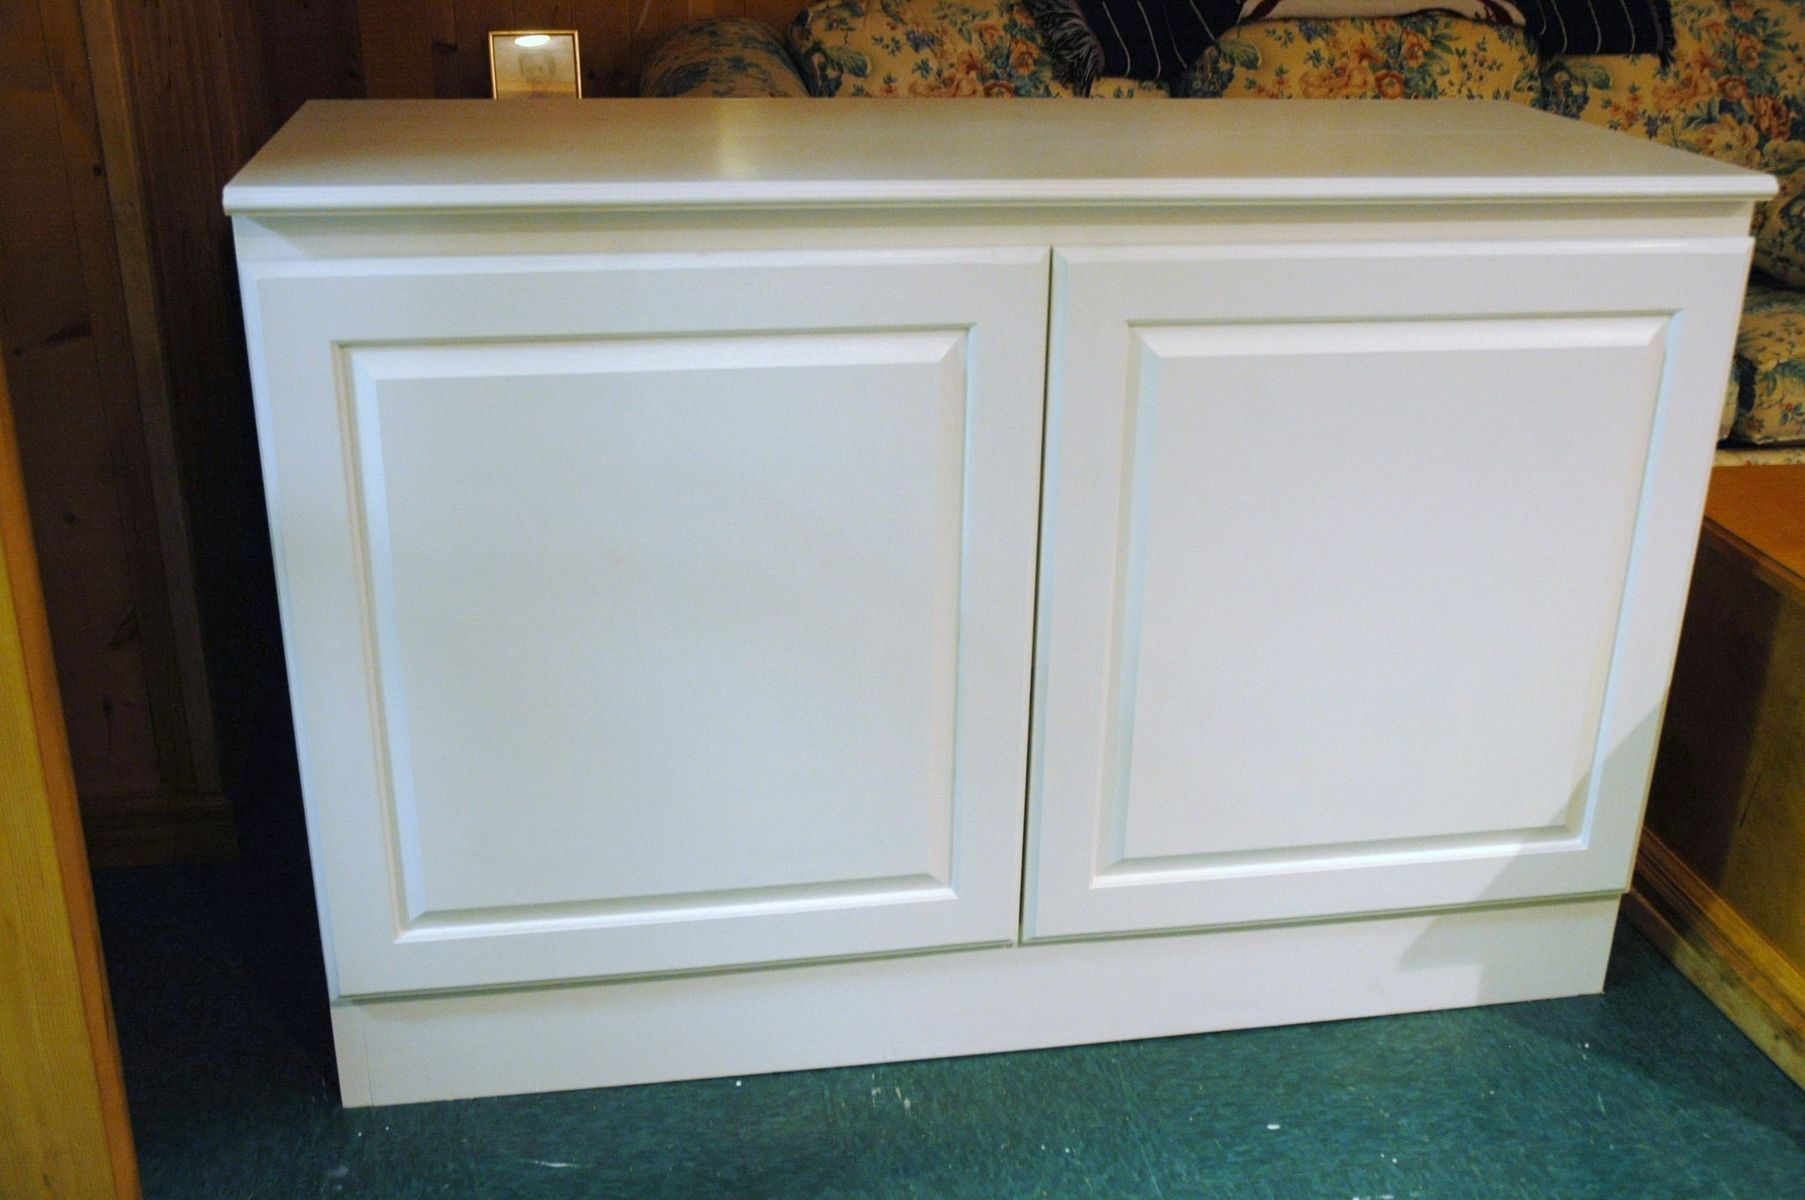 Handmade Built In Bookcases Base Cabinets And Fireplace Surround By Wooden It Be Nice Custommade